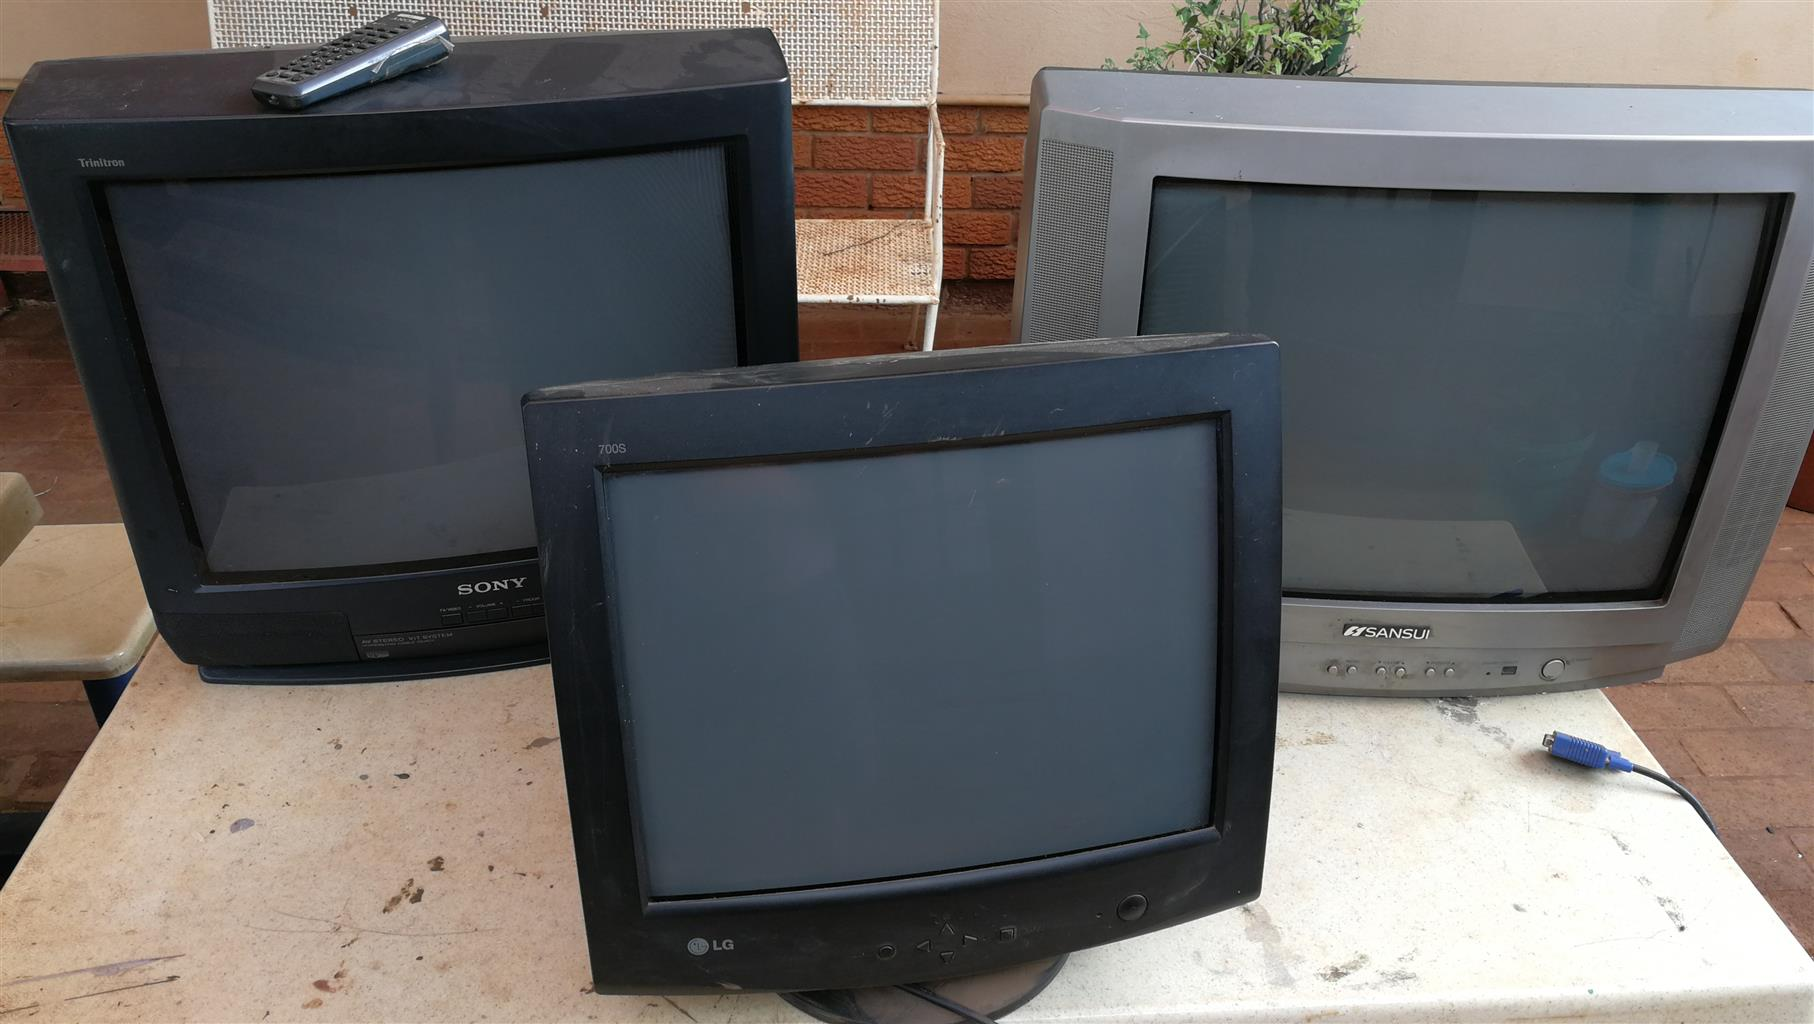 CRT TV and Computer screen